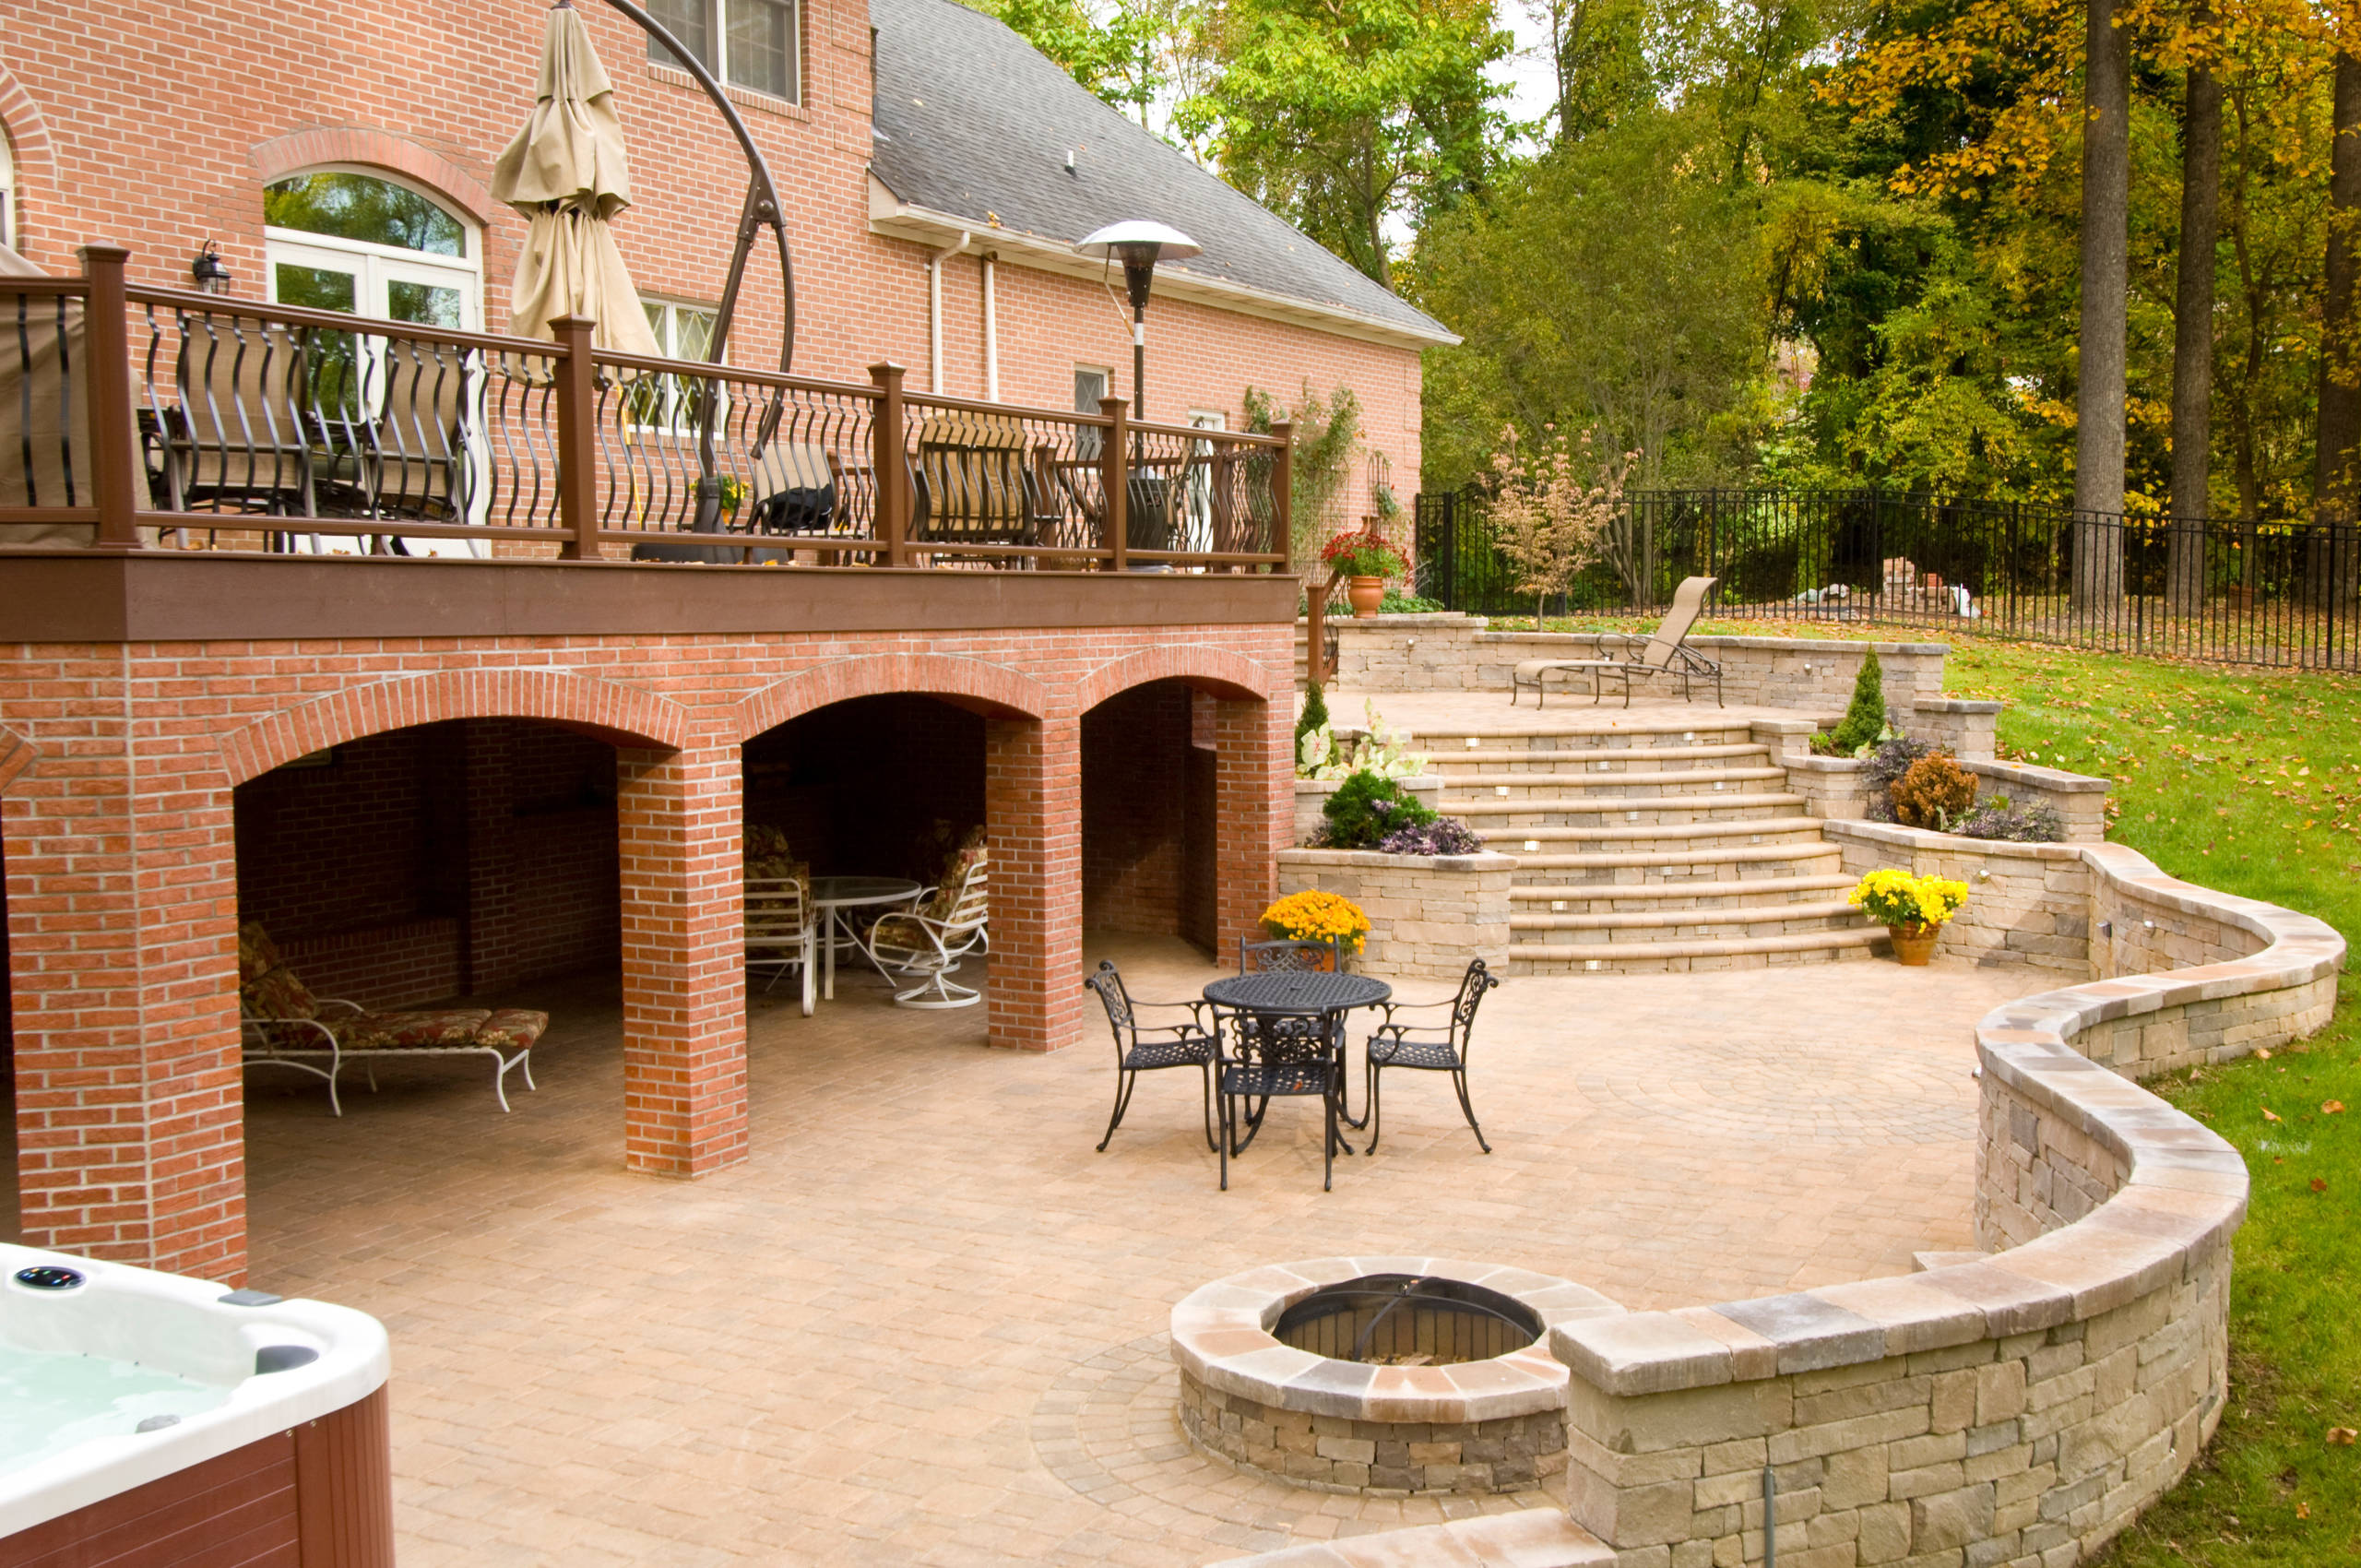 Lutherville Outdoor Living Environment